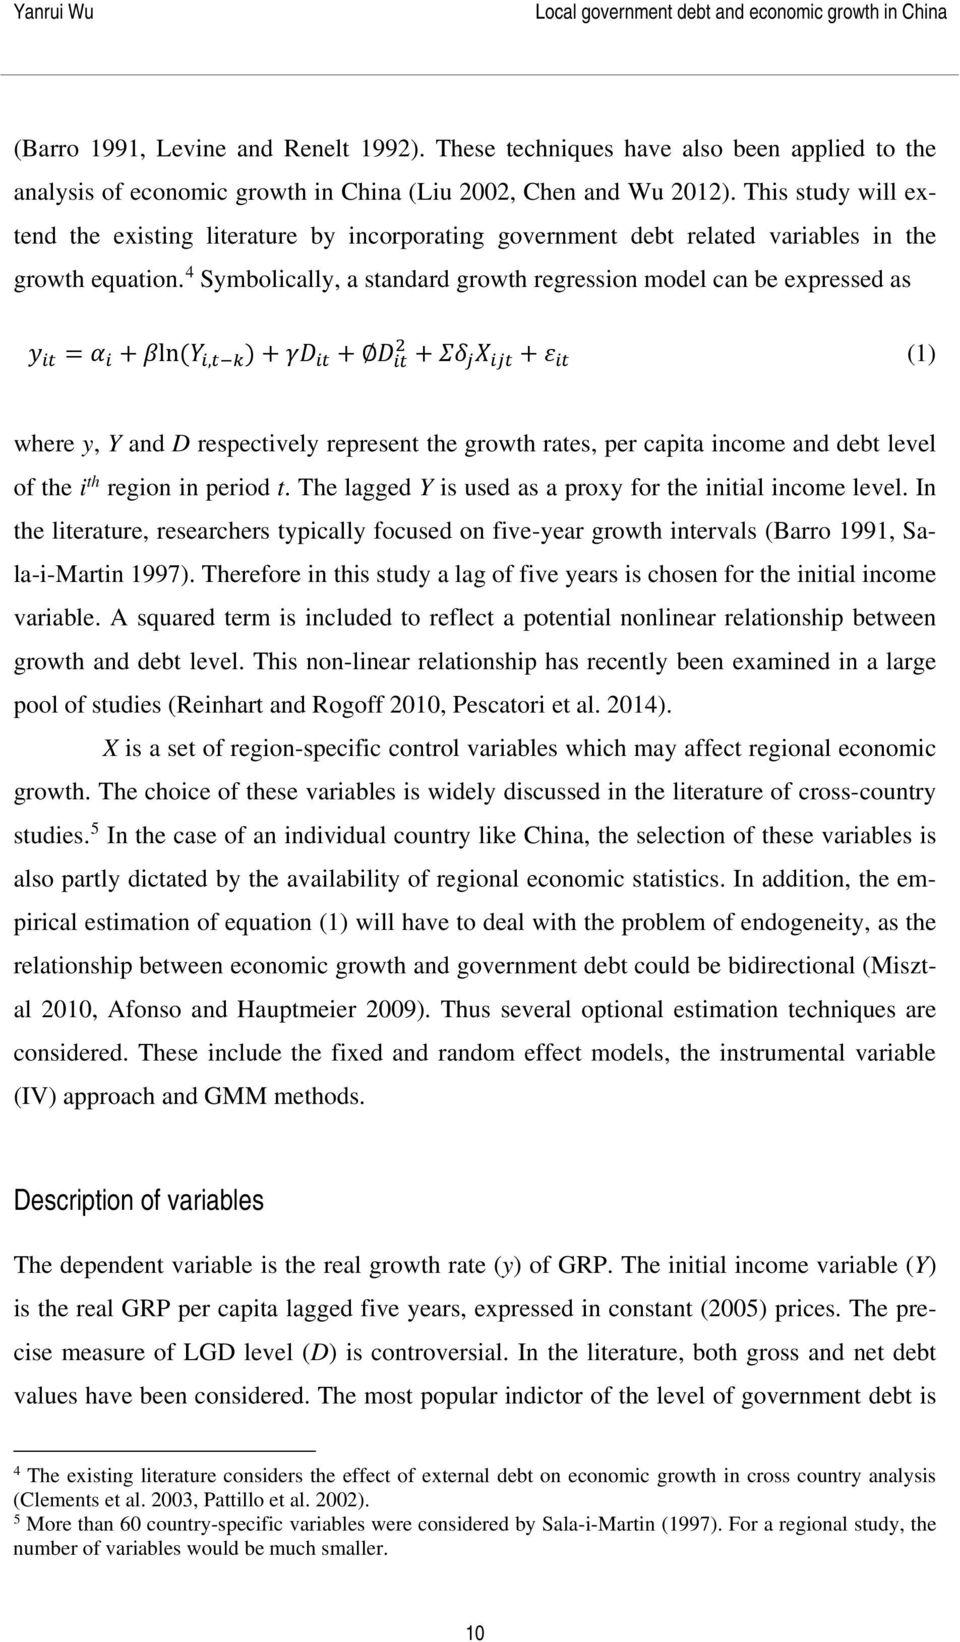 This study will extend the existing literature by incorporating government debt related variables in the growth equation.